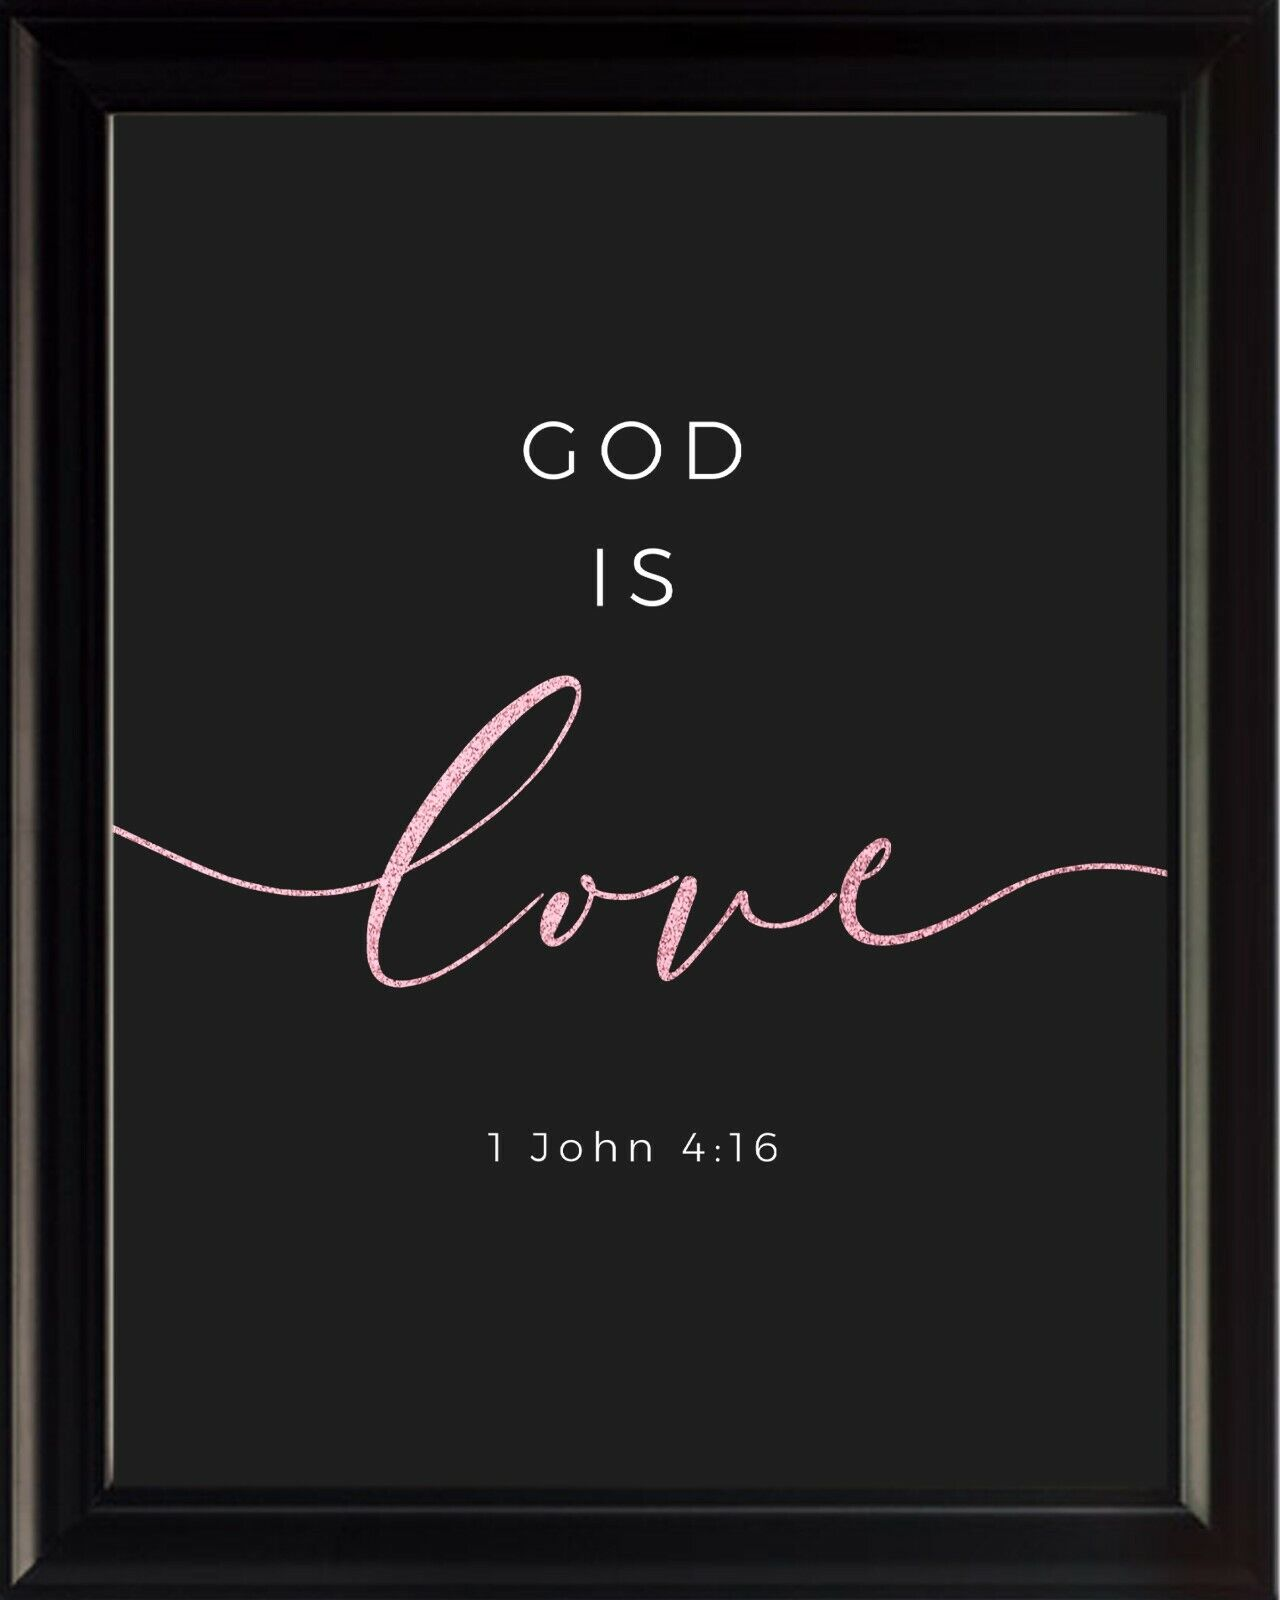 1 John 4 16 God is Poster Print Picture or Framed Wall Art - Christian Gifts